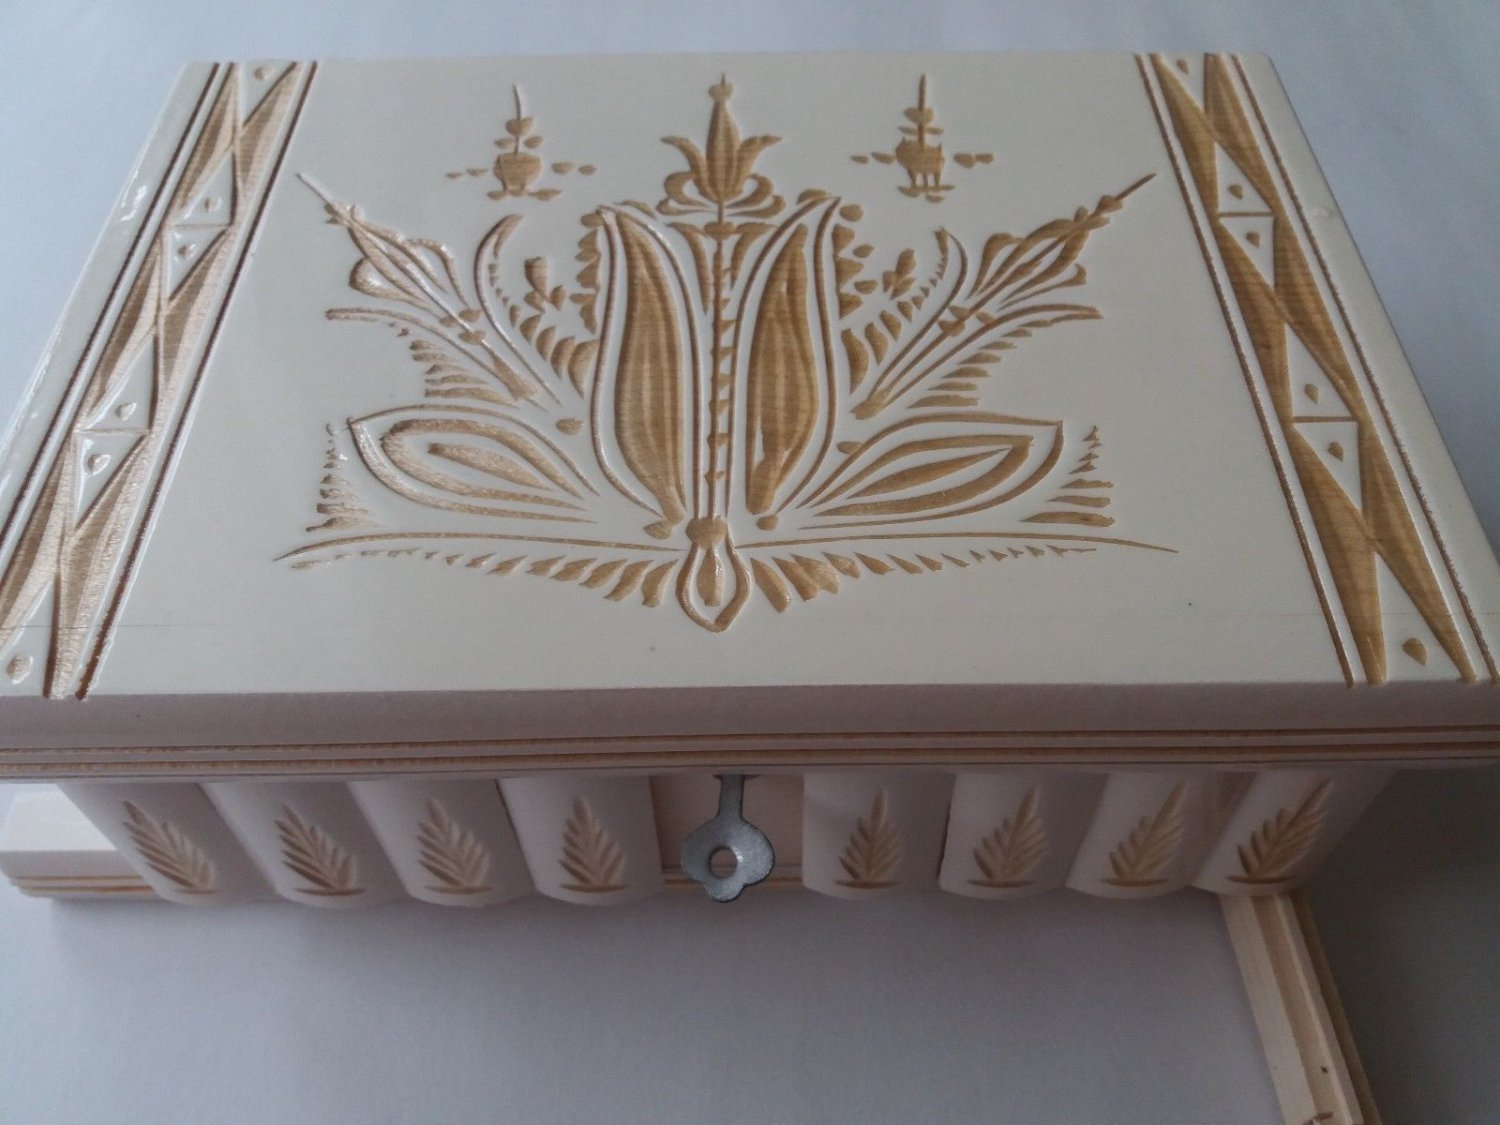 New big huge white jewelry magic puzzle box adventure challenge hidden drawer